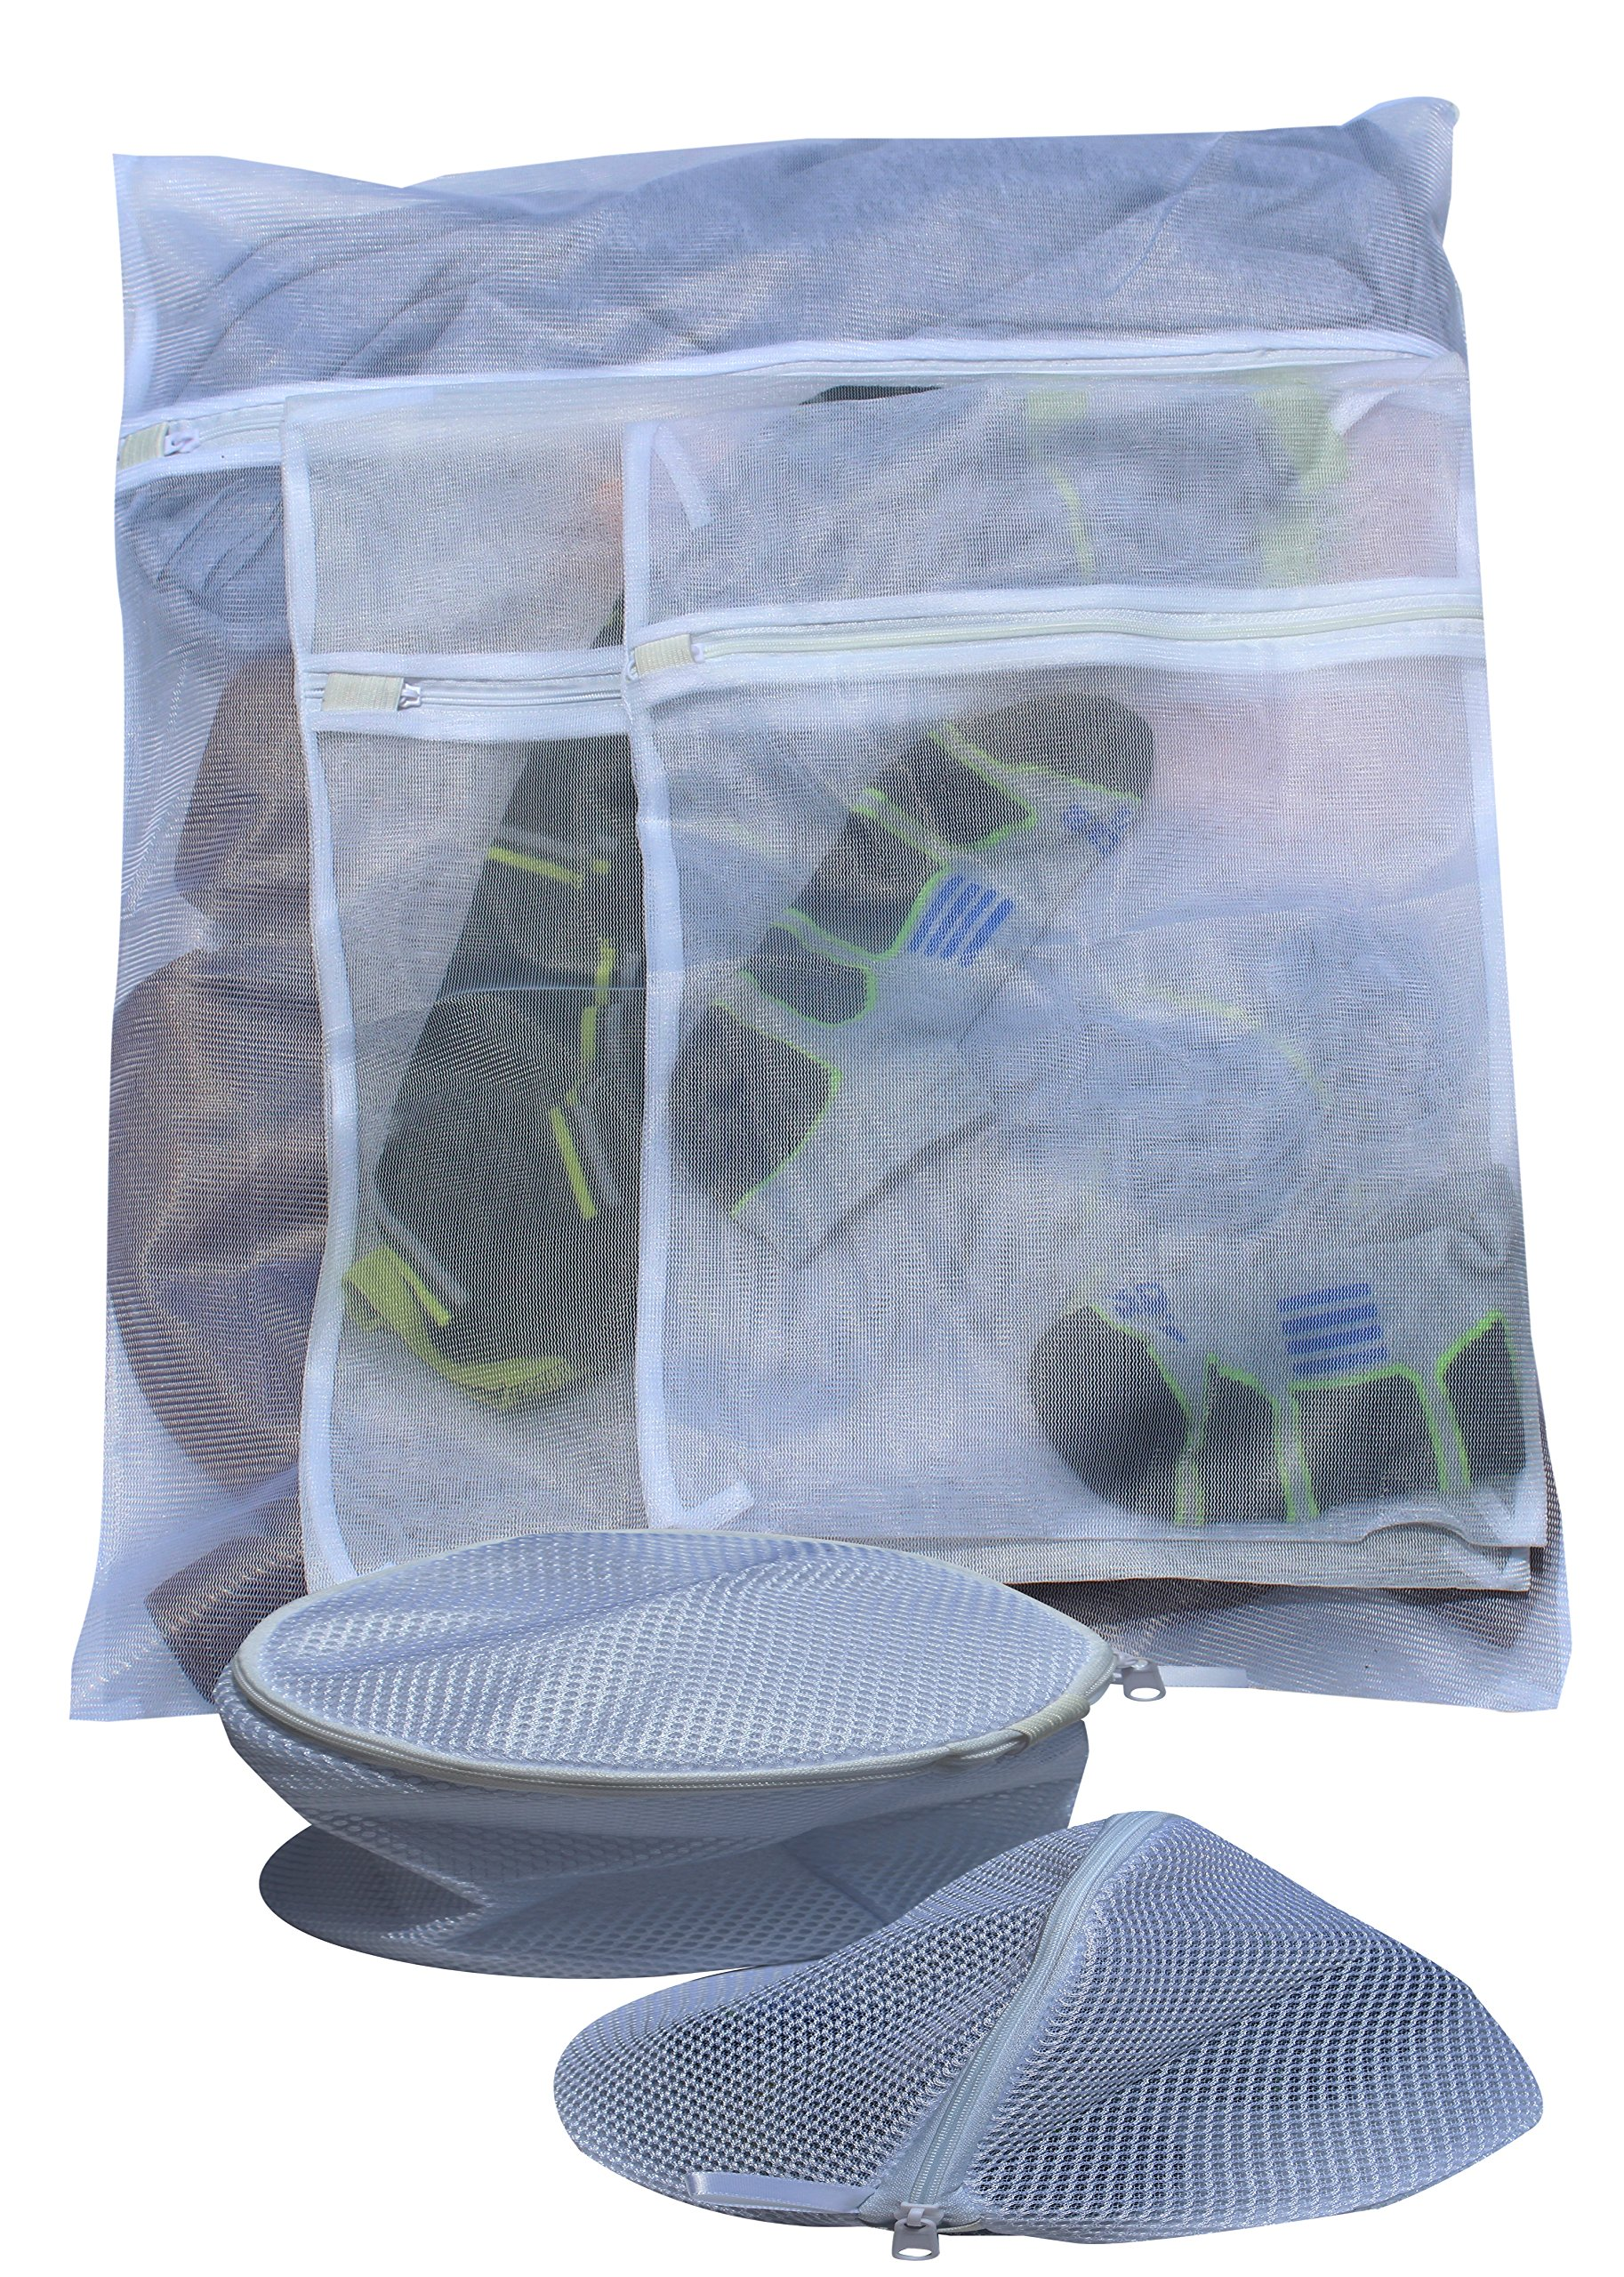 Mesh Laundry Bags - Set of 5 - Zippered Mesh Bags - 1 Large, 2 Medium and 2 Small - Machine Wash any and all clothes- Protect your best clothes